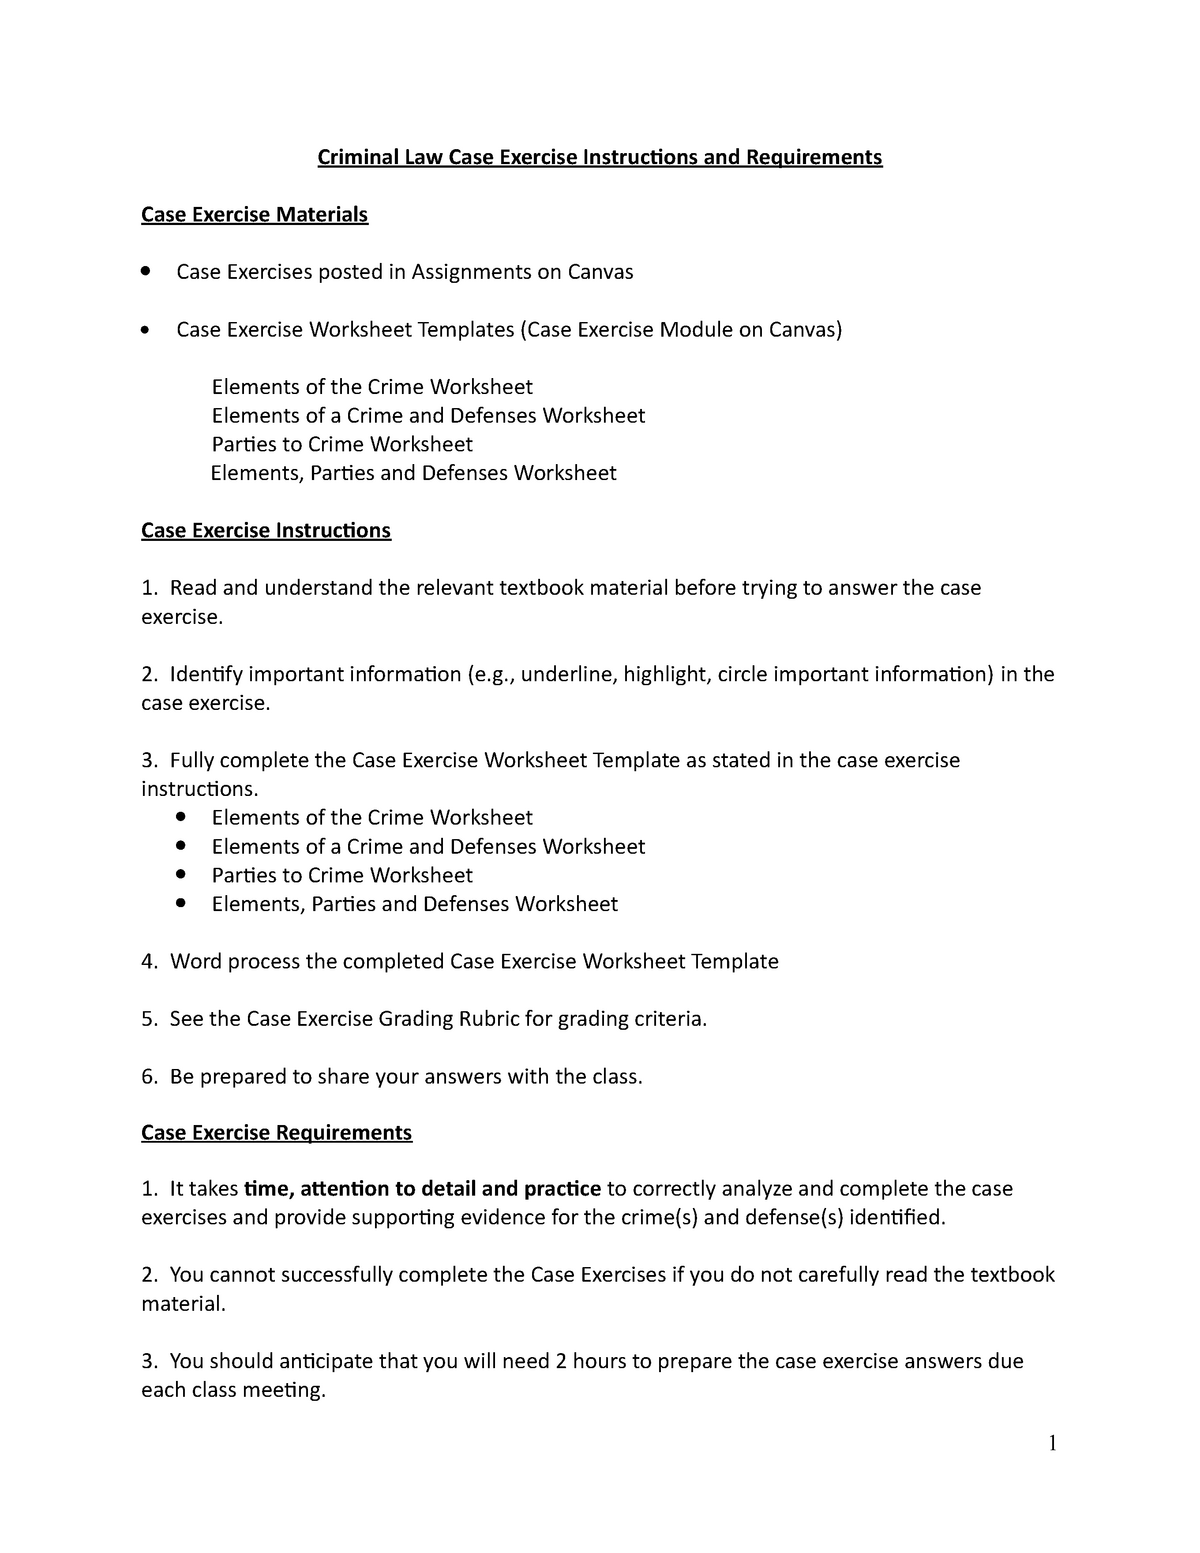 Criminal Law Case Exercise Instructions And Requirements 1 Studocu